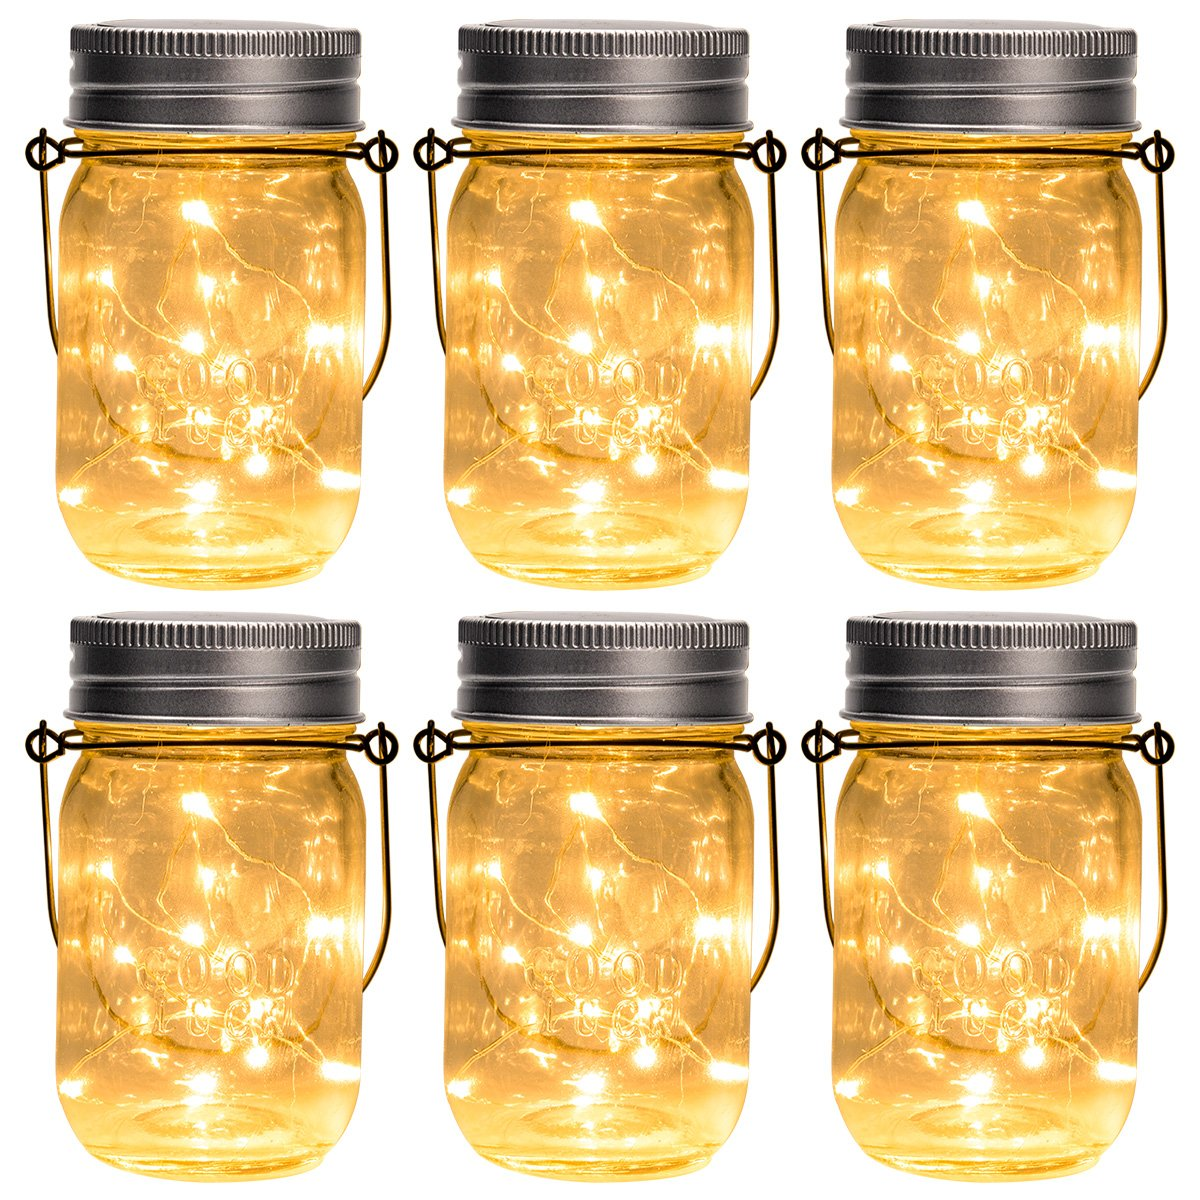 GIGALUMI Hanging Solar Mason Jar Lid Lights, 6 Pack 15 Led String Fairy lights Solar Laterns Table Lights, 6 Hangers Jars included. Great Outdoor Lawn Décor Patio Garden, Yard Lawn.